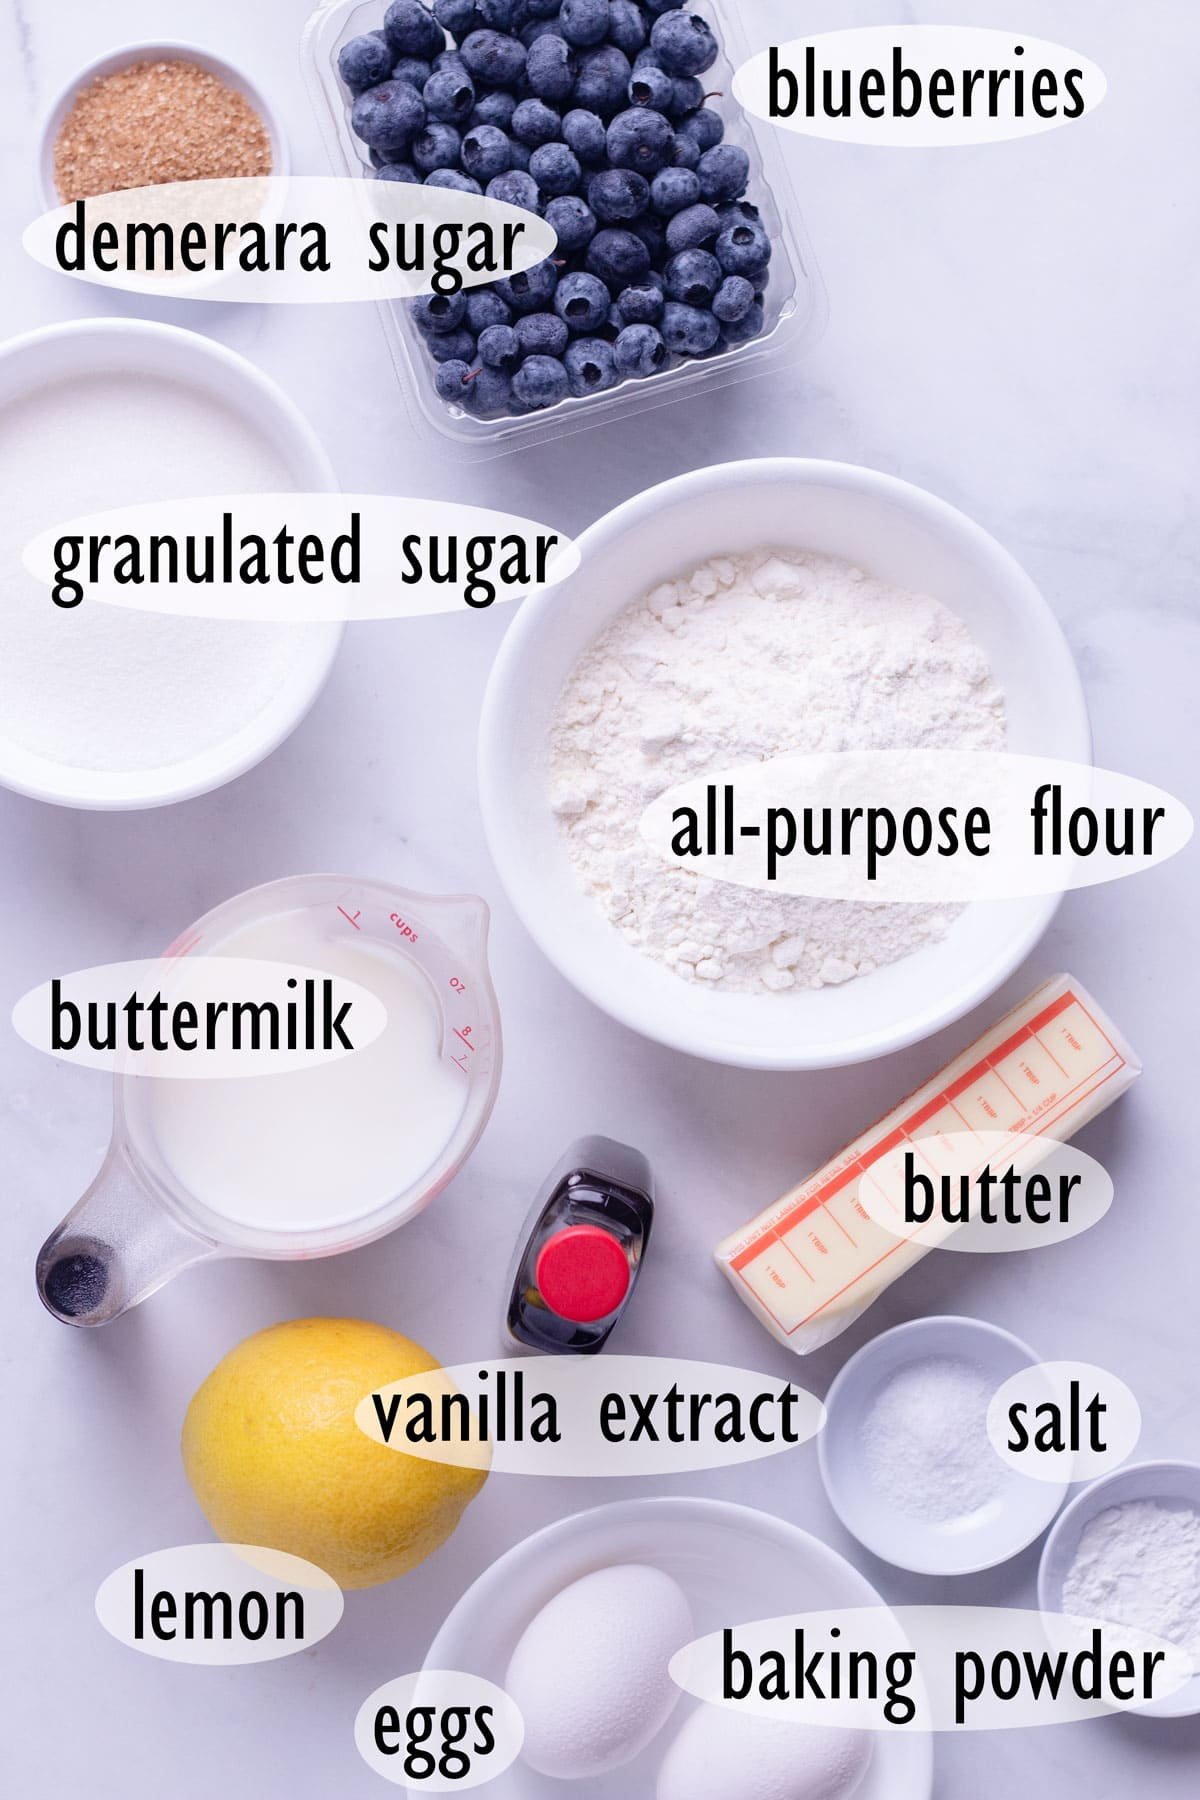 Overhead view of ingredients for blueberry muffins, including flour, buttermilk, butter, sugar and eggs.